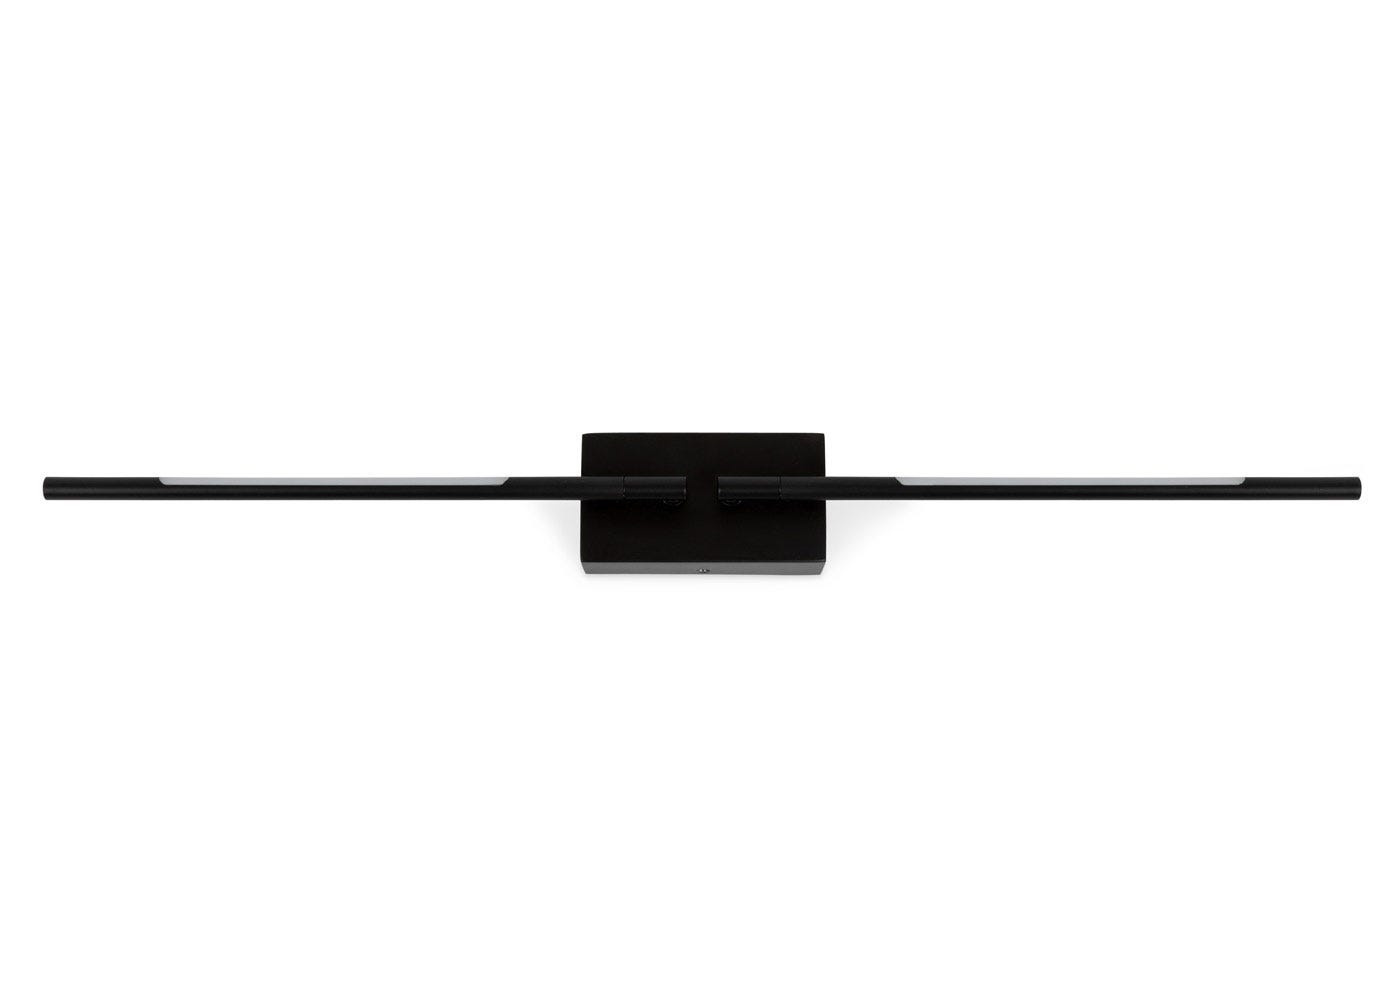 As shown: Saber LED wall light in black